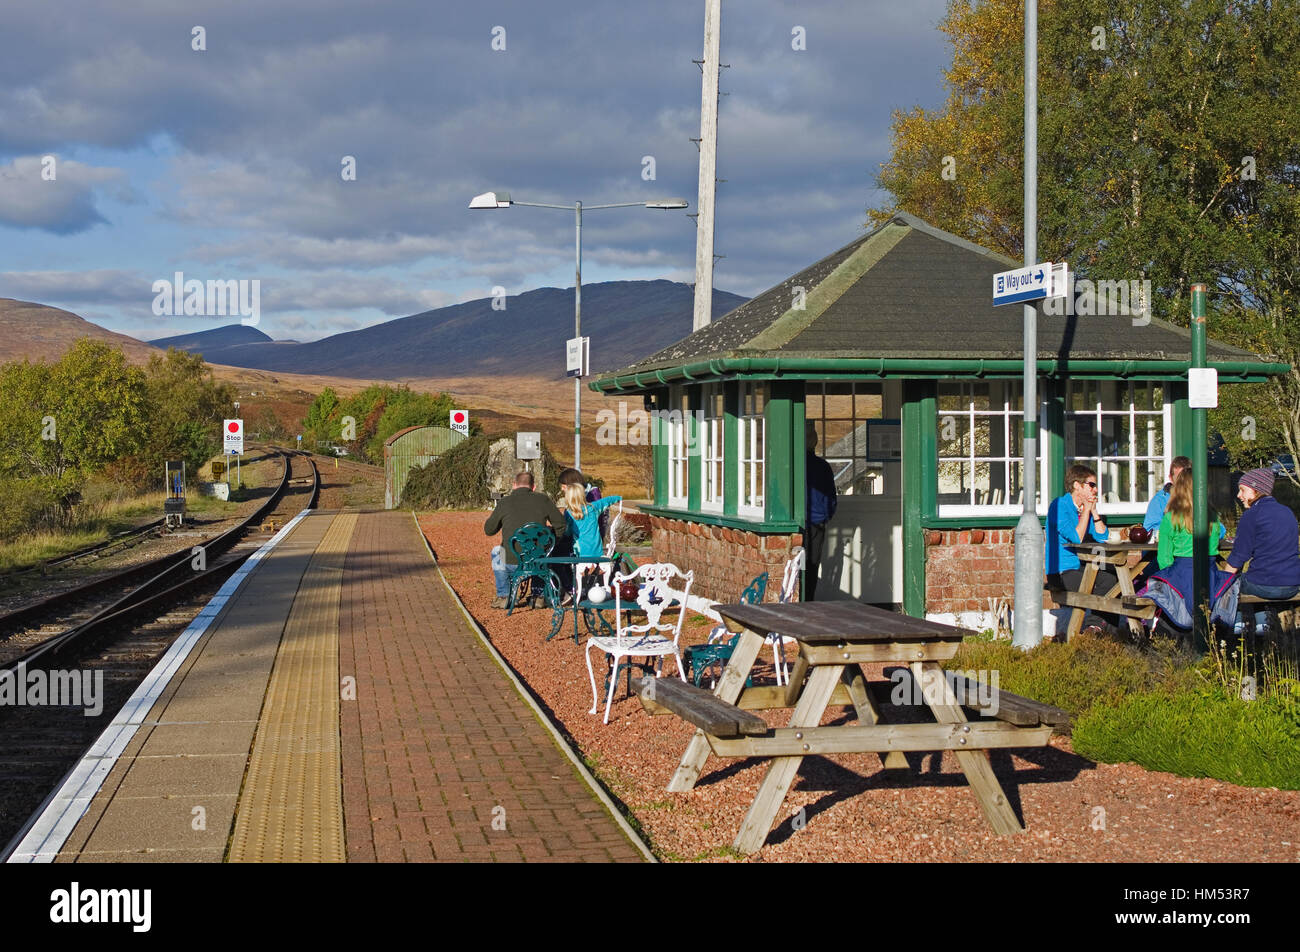 People Sitting Outside At Picnic Tables On The Platform Rannoch Railway Station Having Refreshments